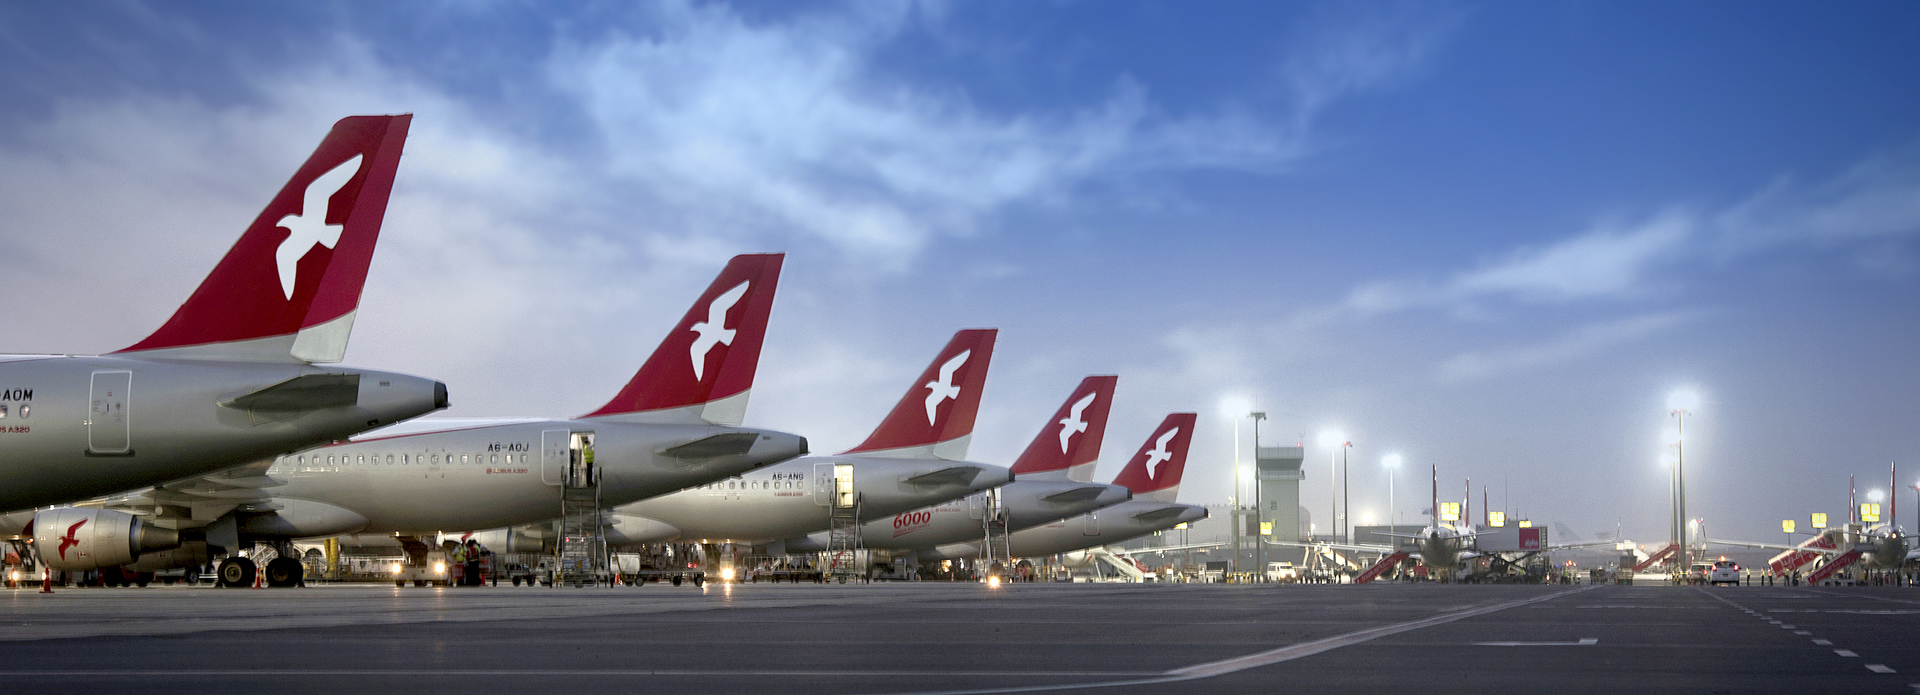 Sharjah Airport appoints consultant for expansion